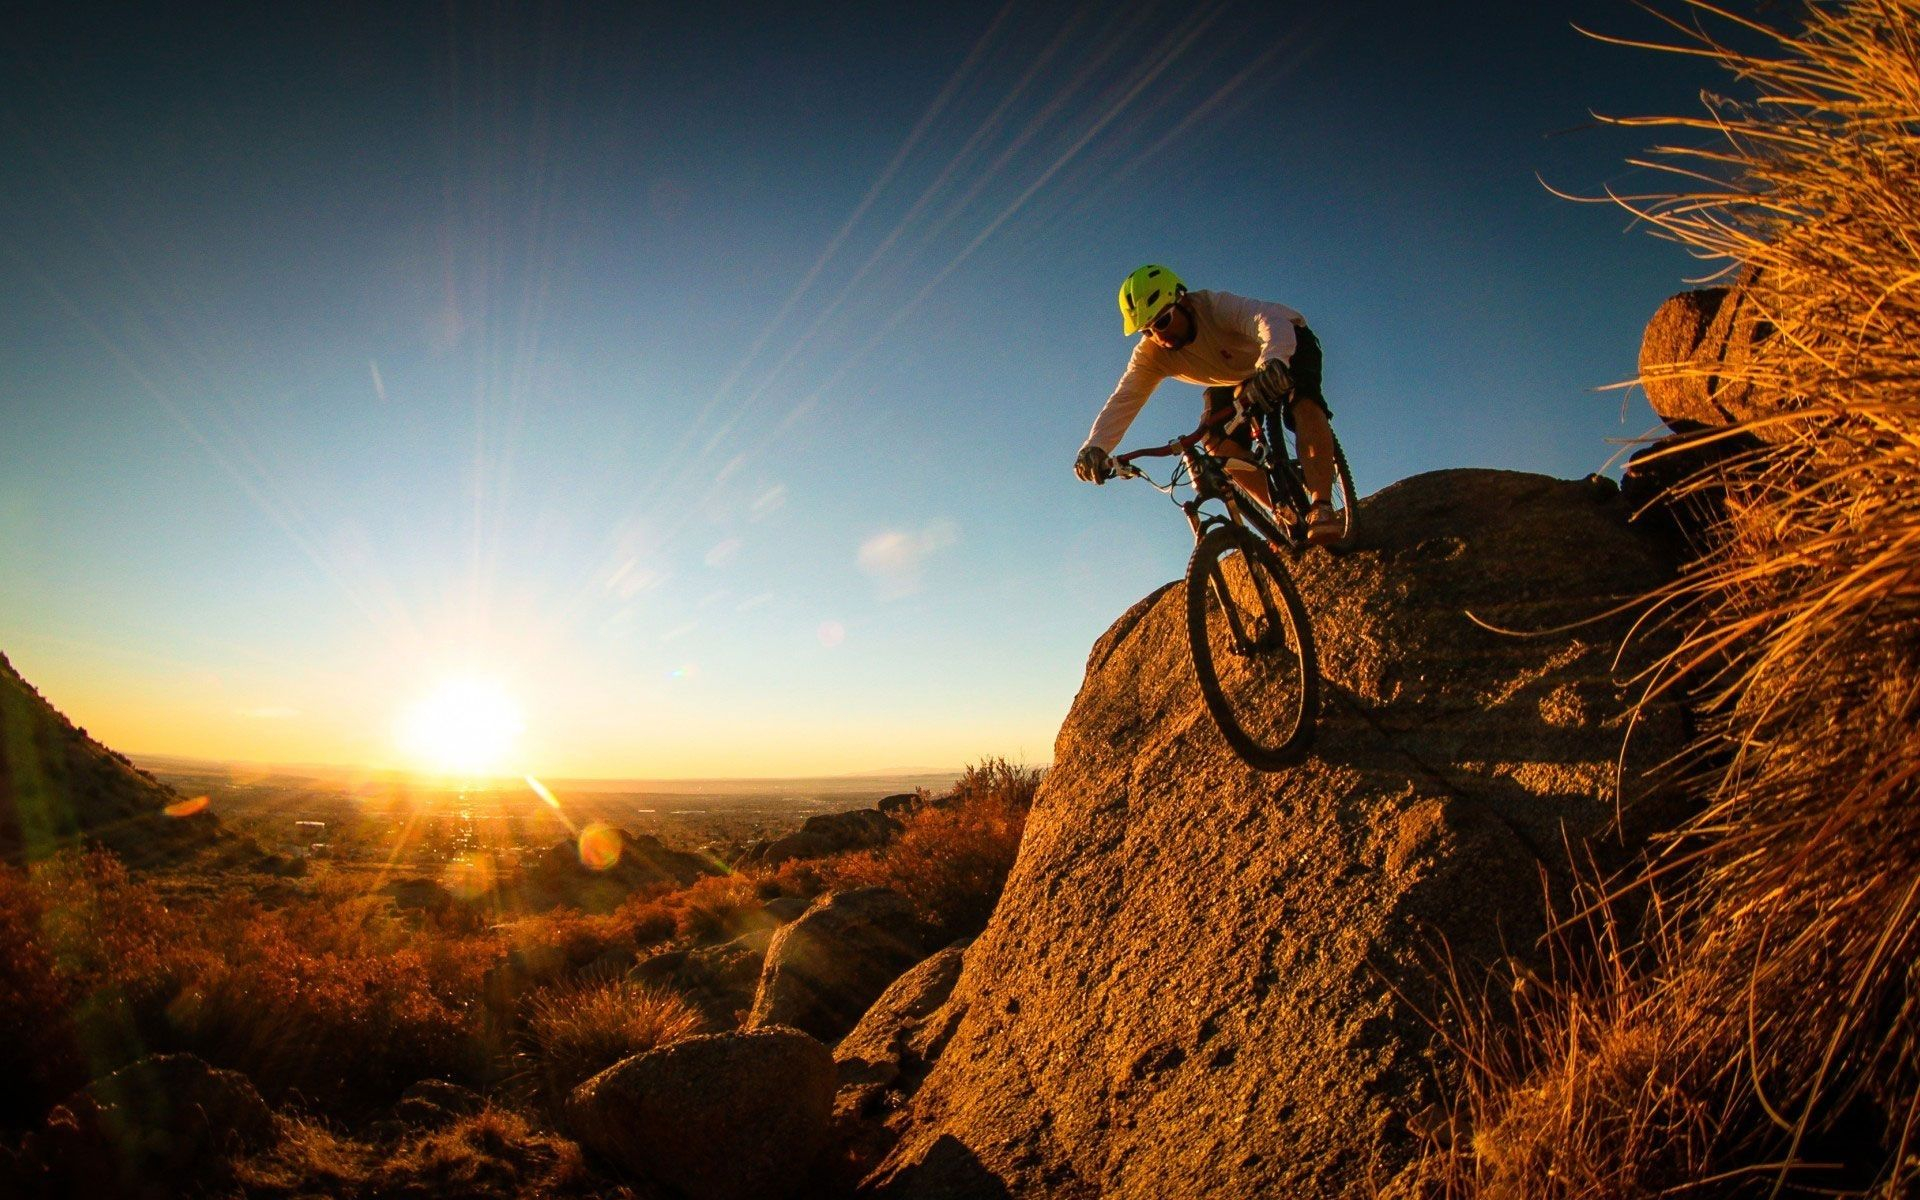 10 New Hd Mountain Biking Wallpaper Full Hd 1920 1080 For Pc